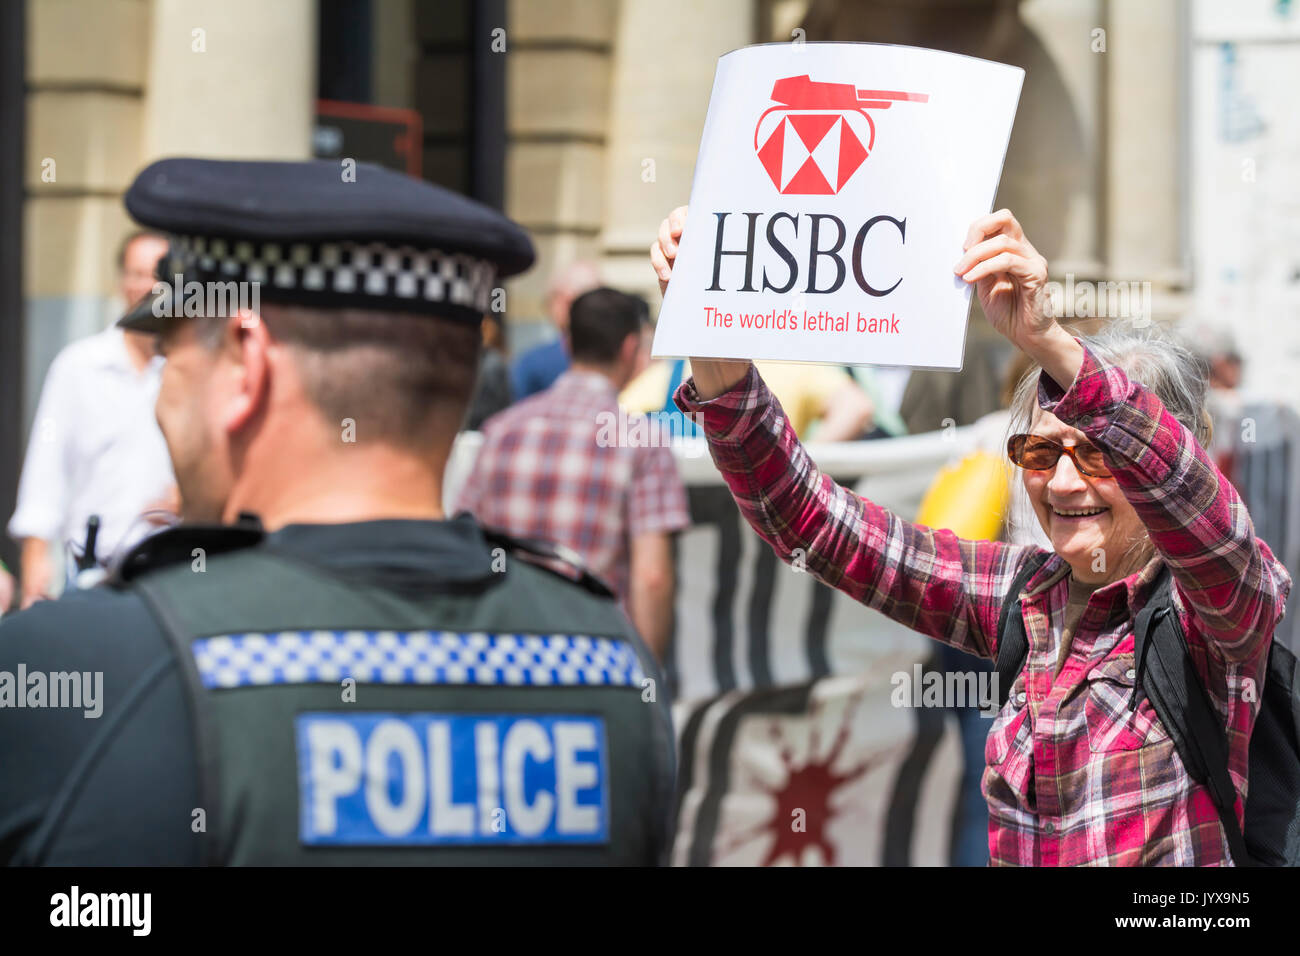 Protestor holding a protest sign up saying 'Stop Arming Israel' outside the HSBC bank in Brighton, East Sussex, England, UK. - Stock Image